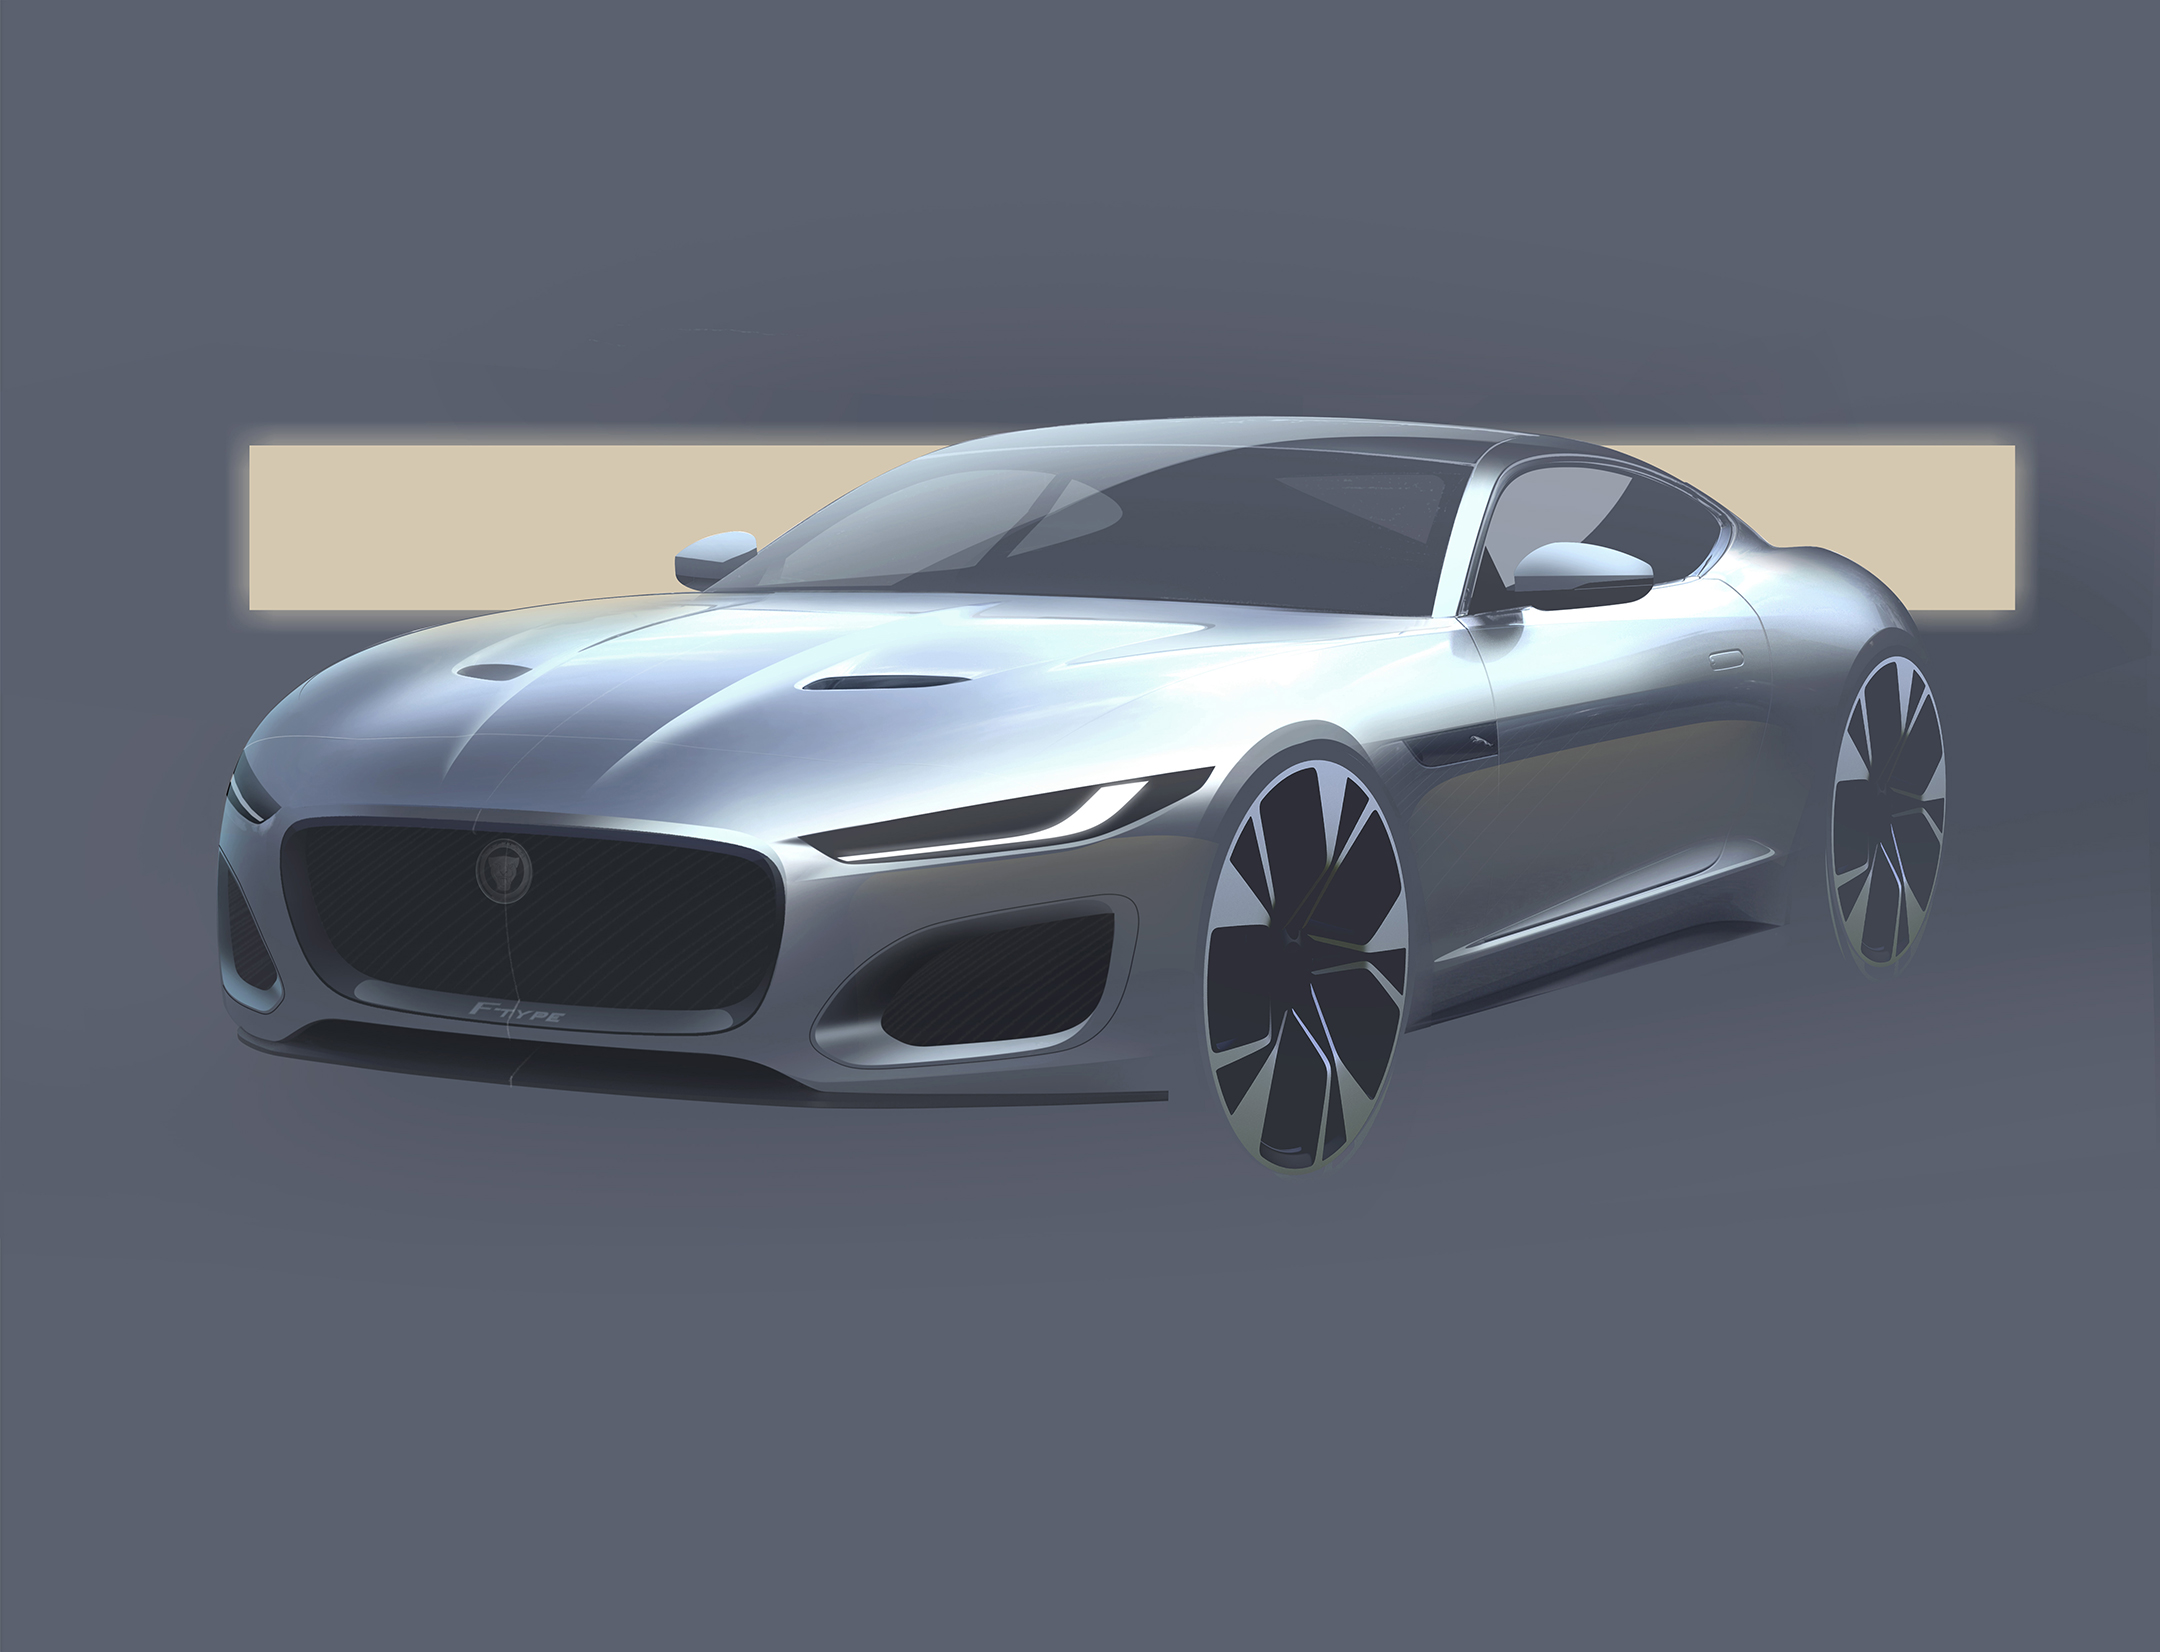 Jaguar F-TYPE - 2019 - design sketch - front / avant